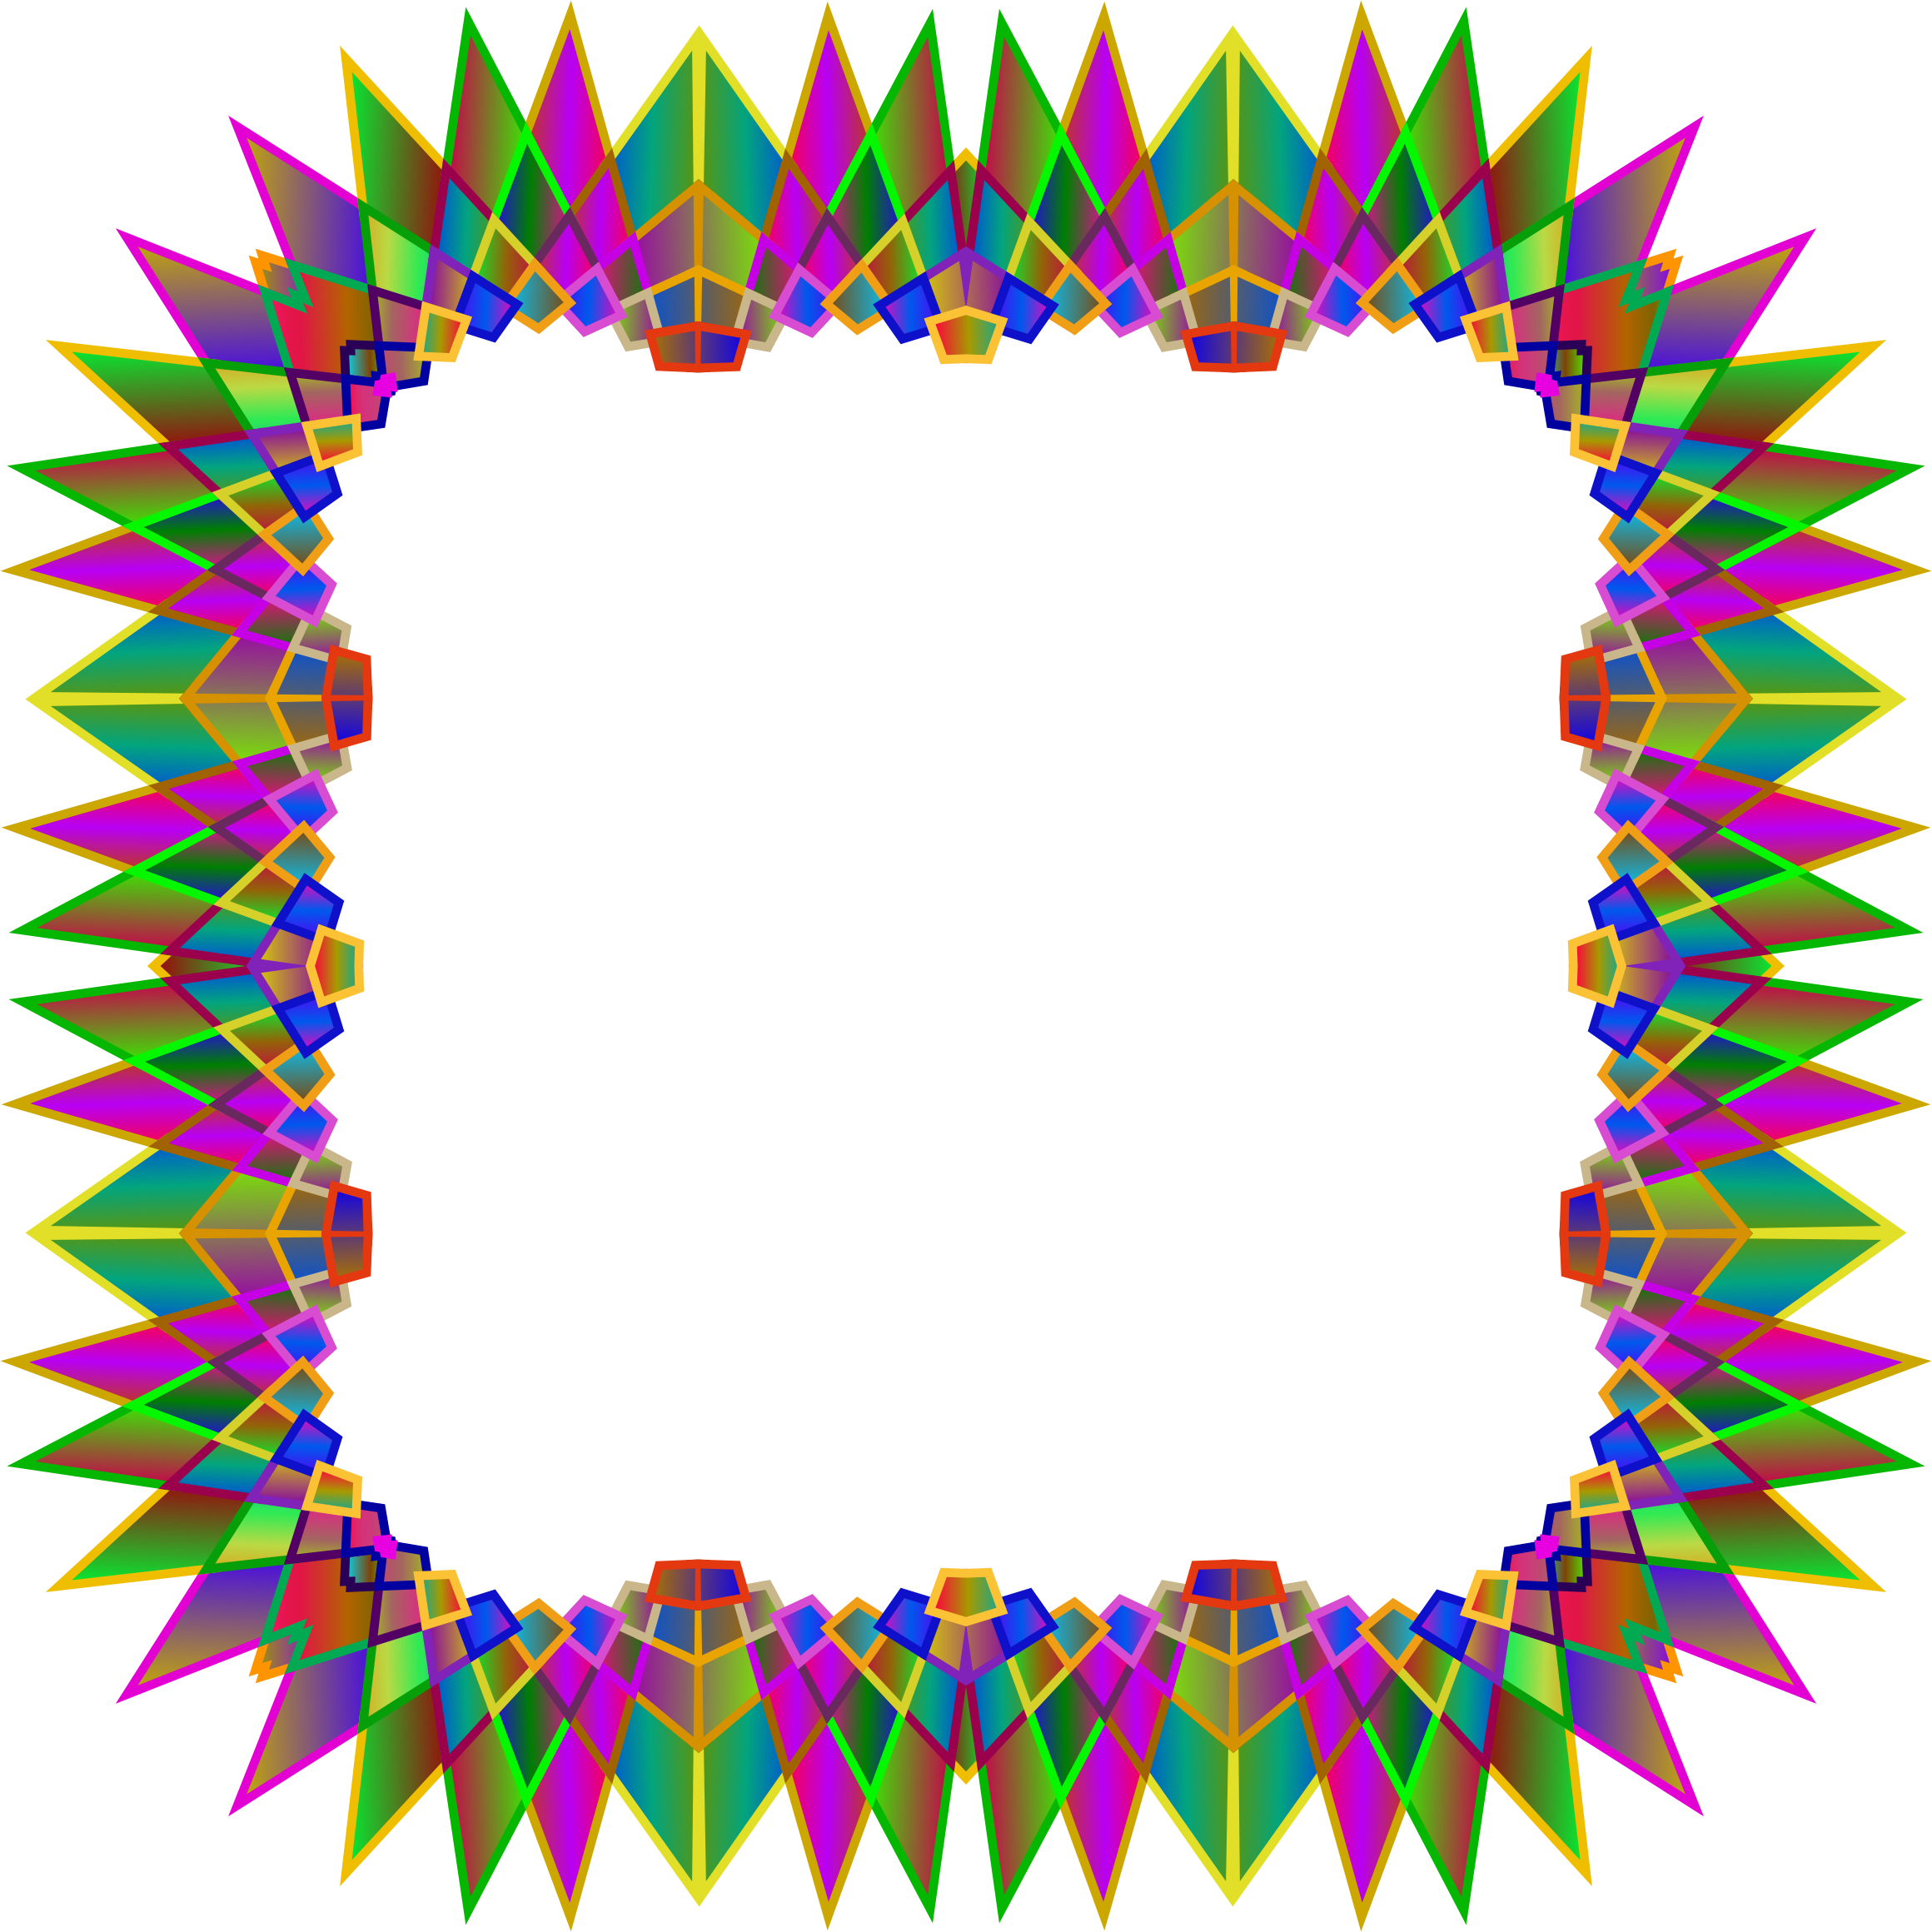 Prismatic MultiPoint Star Frame 4 by GDJ